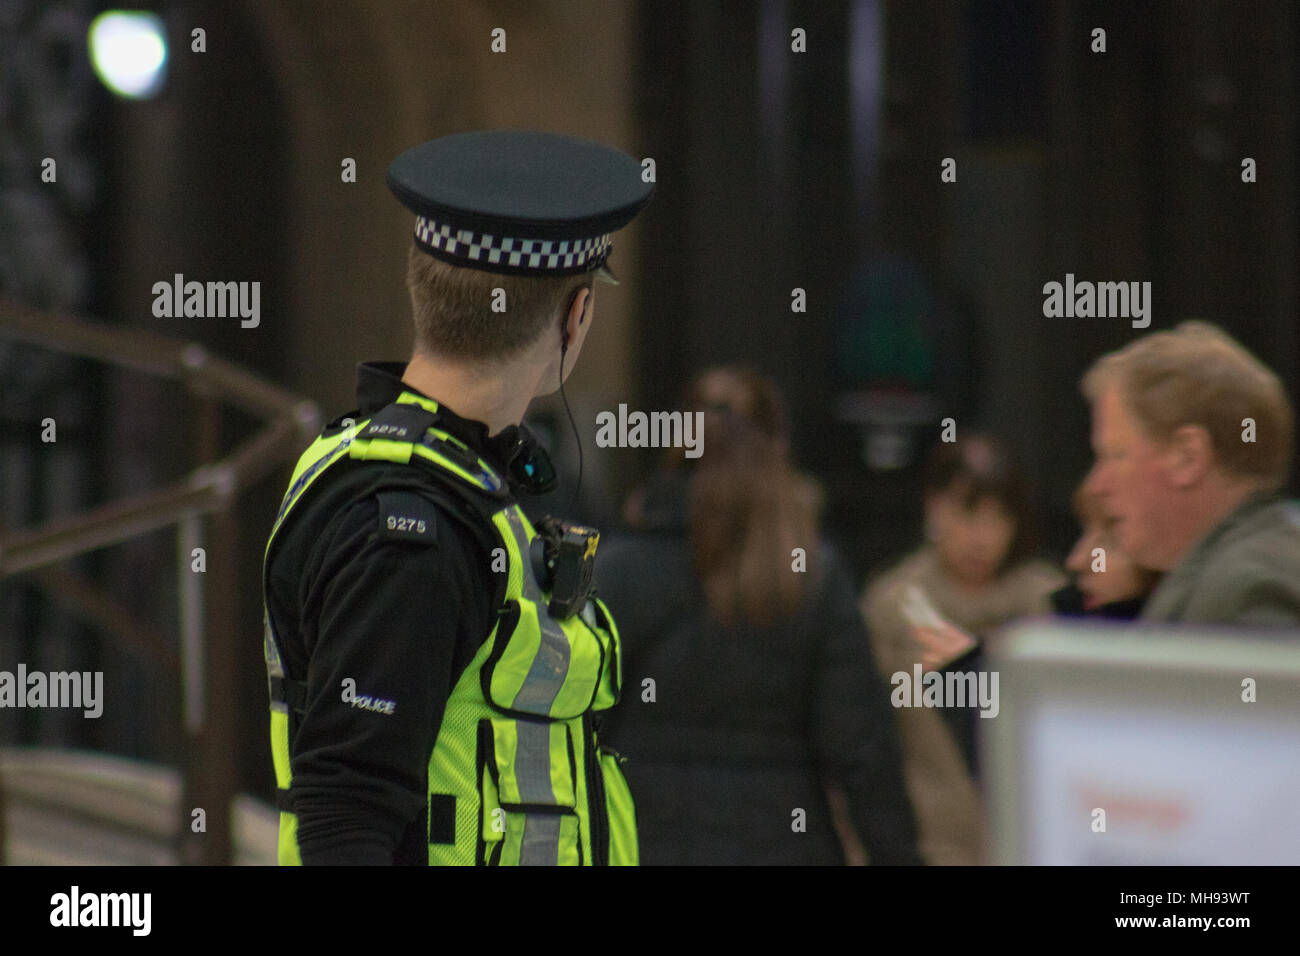 British Transport Police (BTP) officer patrols Glasgow Central train station, Glasgow, Scotland - Stock Image